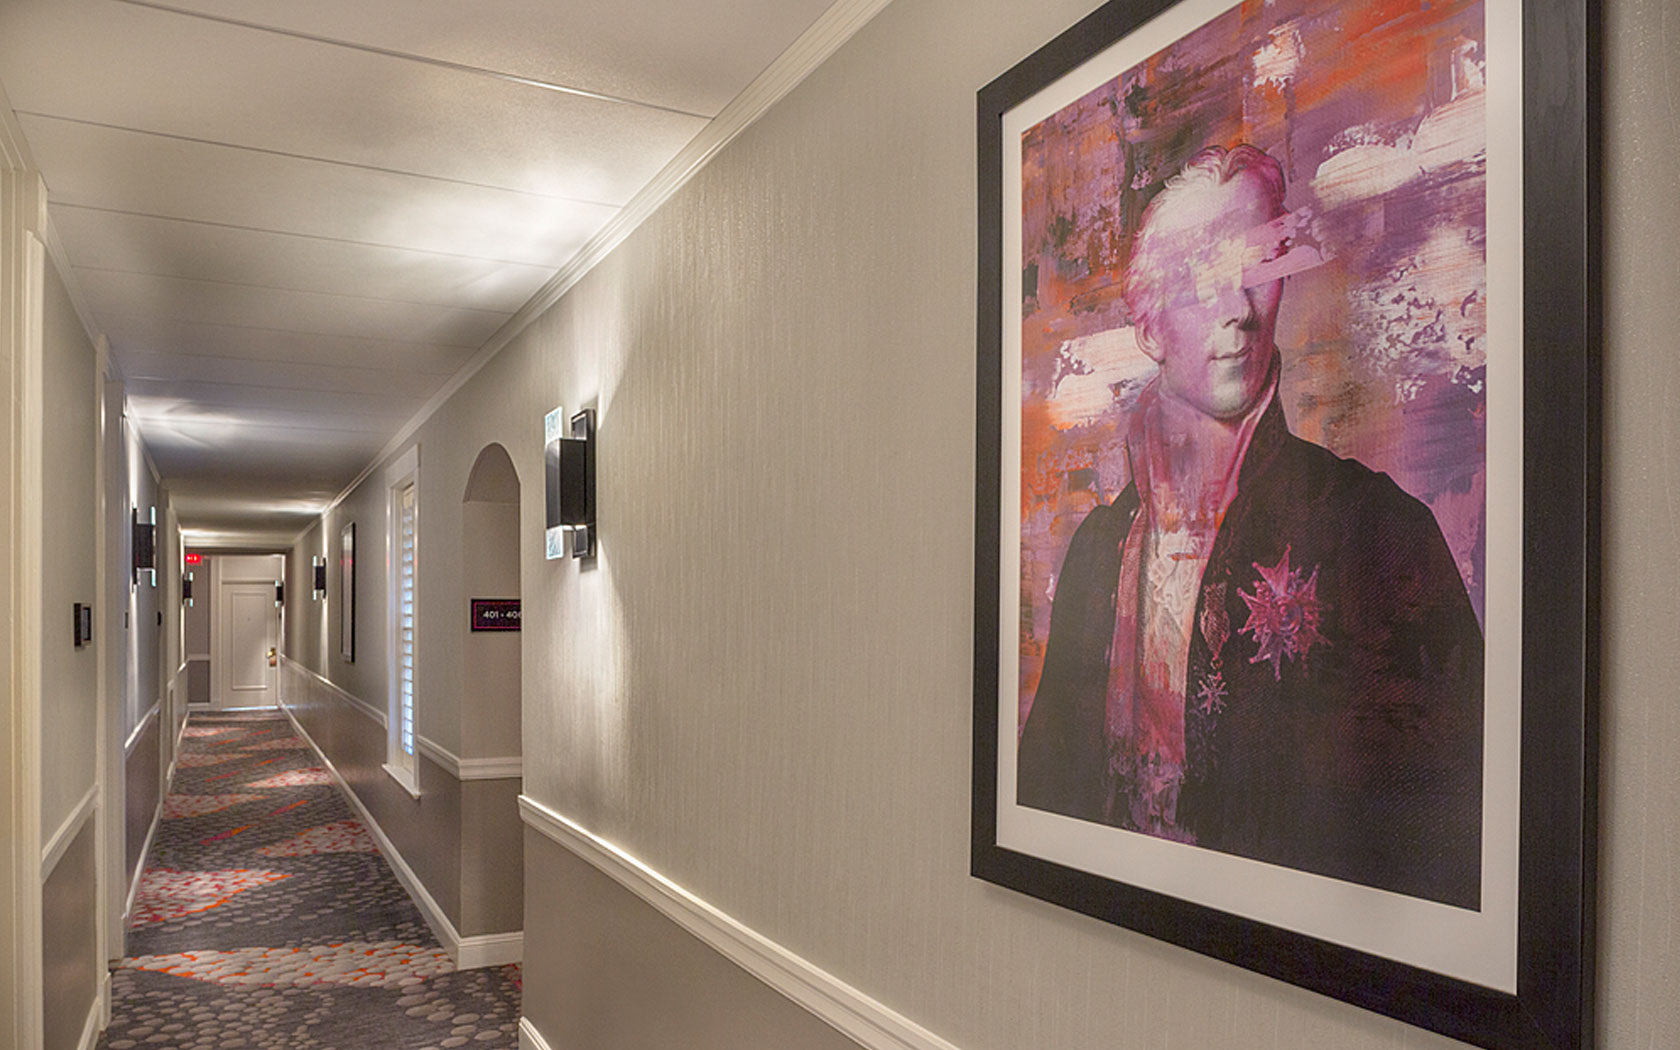 Hallway with picture on the wall